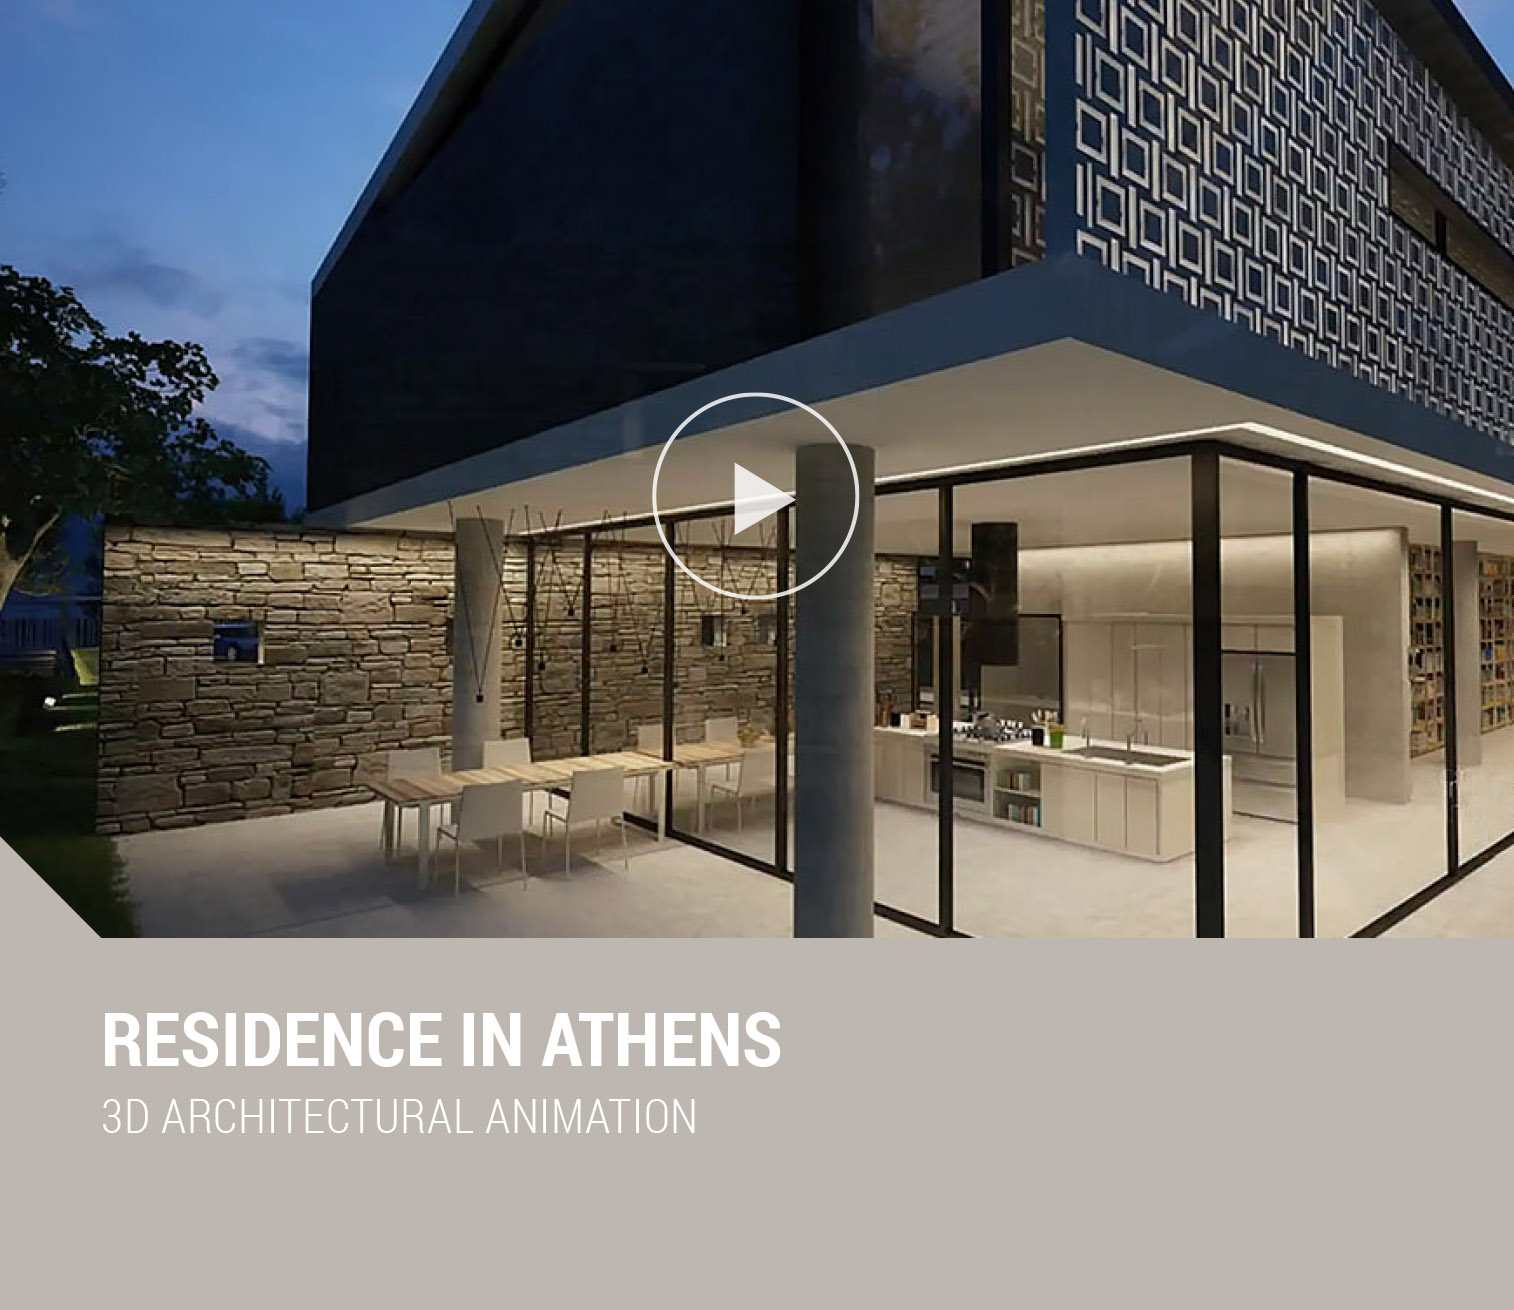 Schema Dimitra Chrona designer, creative director, architectural, 3D visualization, 3D Rendering, branding websites, digital, graphic design, interior design, real estate, luxury property, staging, museum, virtual, art, brochures, exhibitions, logotype, logo, Canada Quebec Montreal Athens Greece schema design residence athens video small.jpg